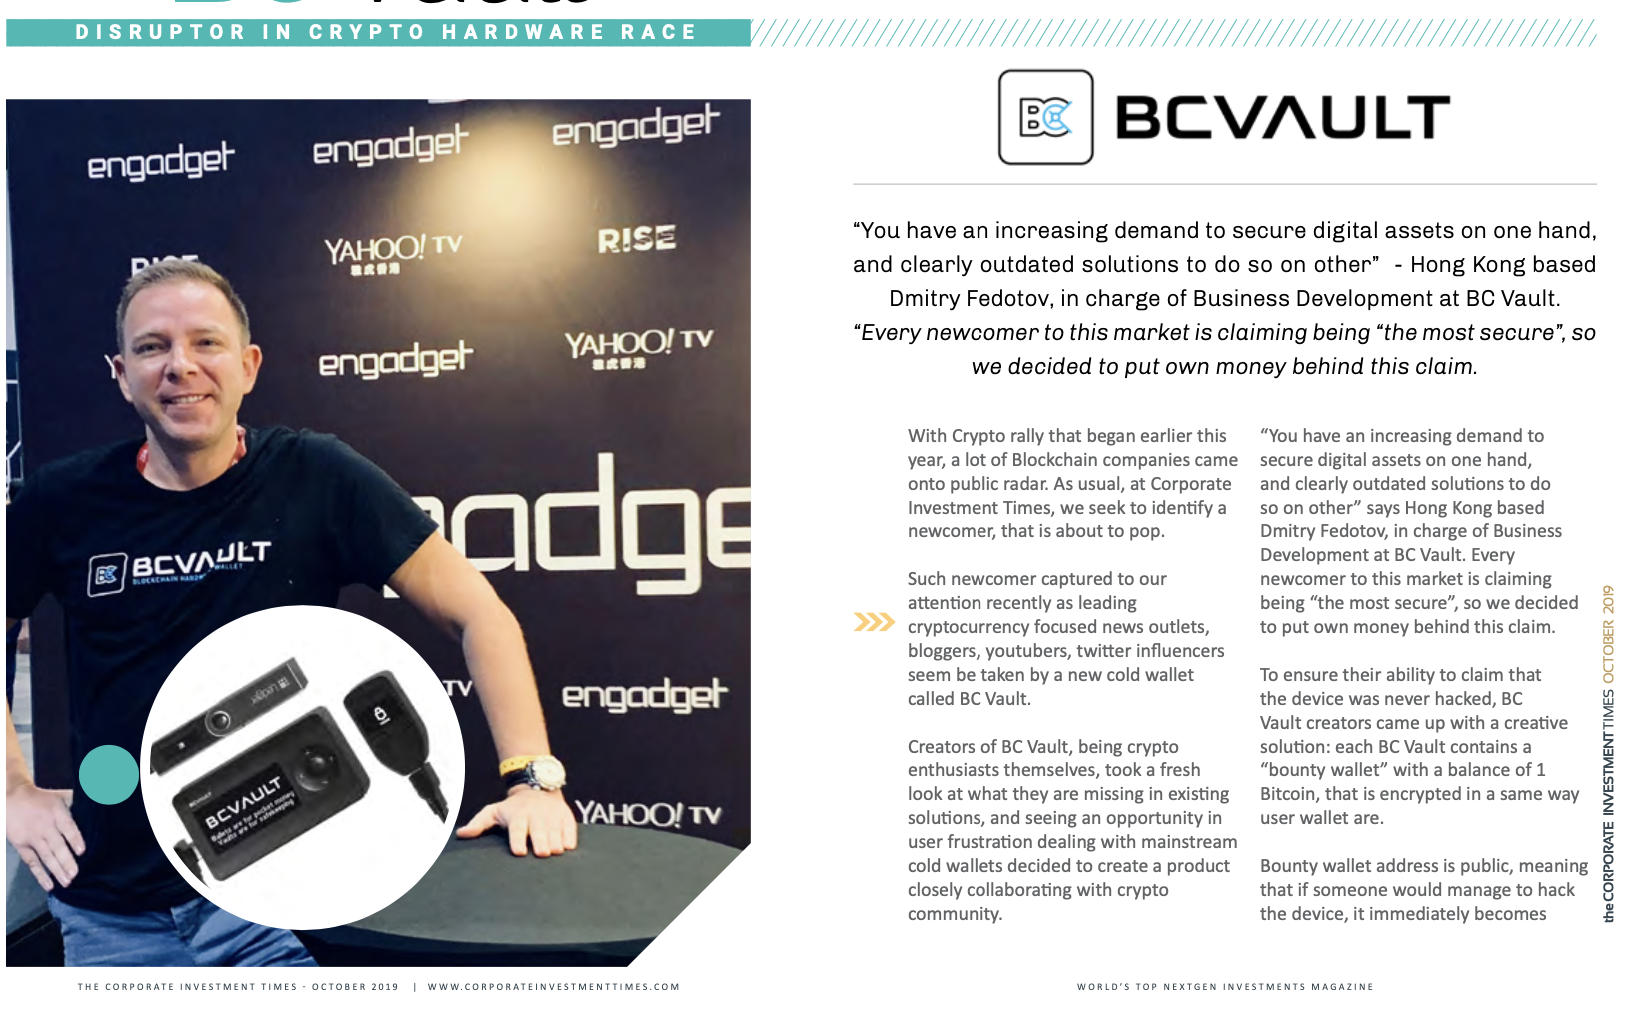 BC Vault and Dmitry Fedotov in Corporate Investment Times